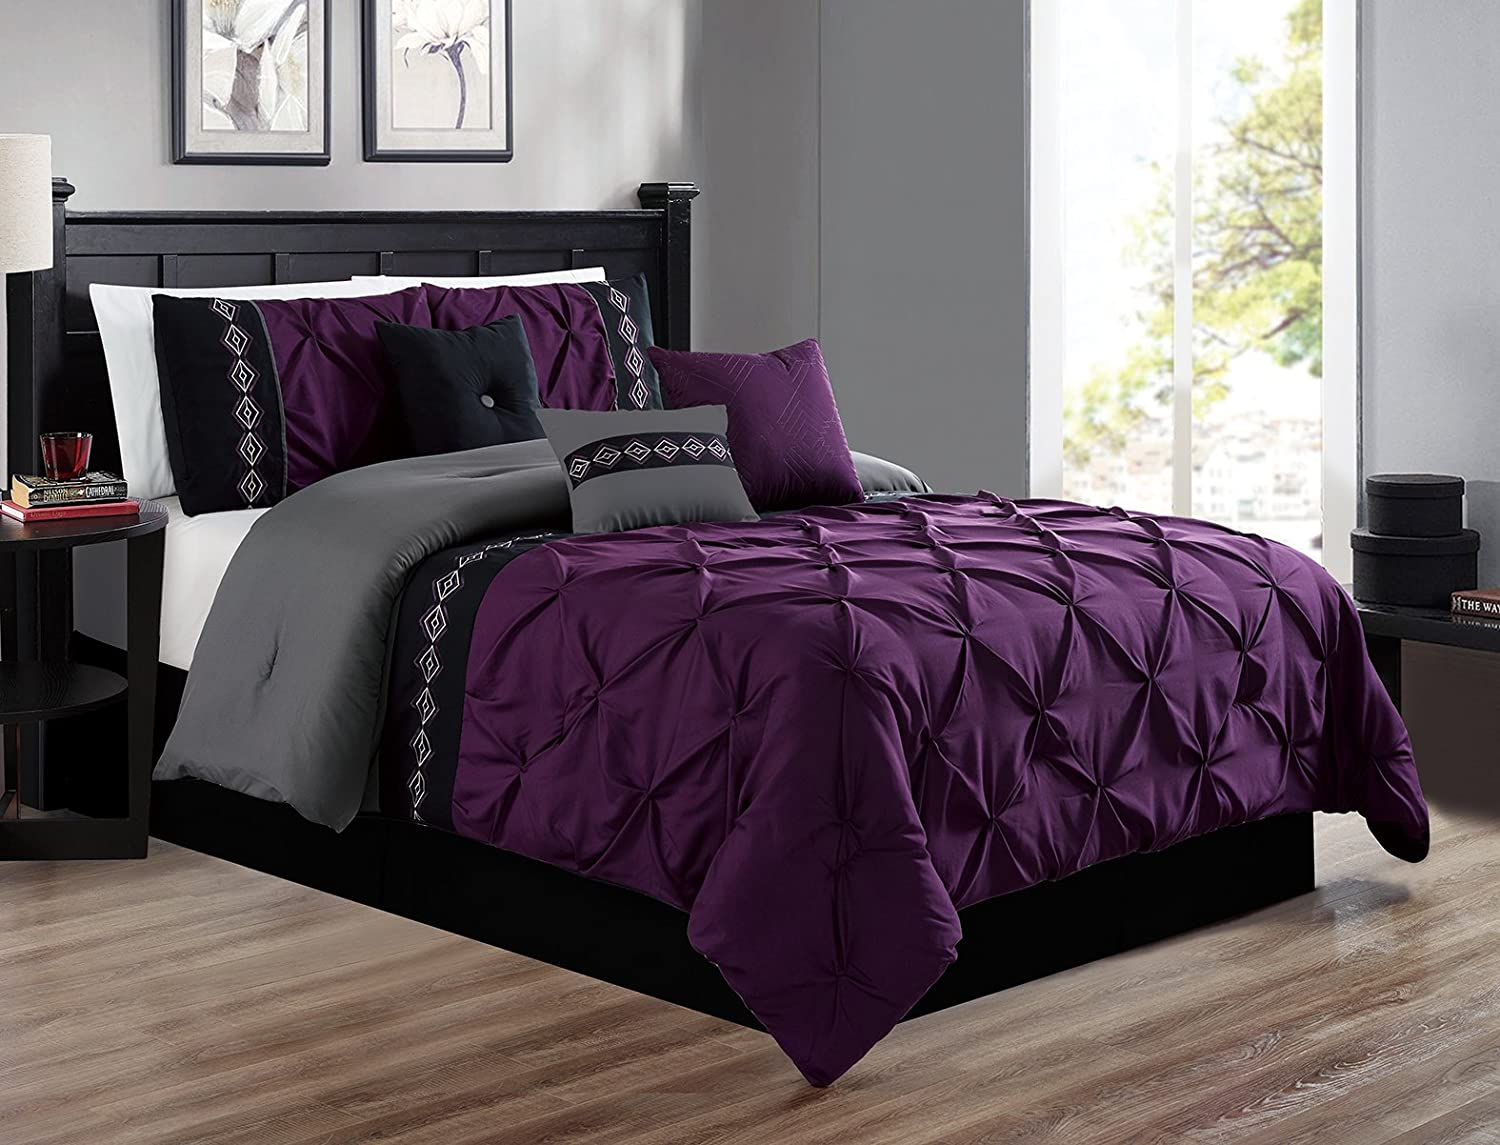 Grand Linen 7 Pieces King Size Dark Purple/Grey/Black Double-Needle Stitch Pinch Pleat All-Season Bedding-Goose Down Alternative Embroidered Comforter Set